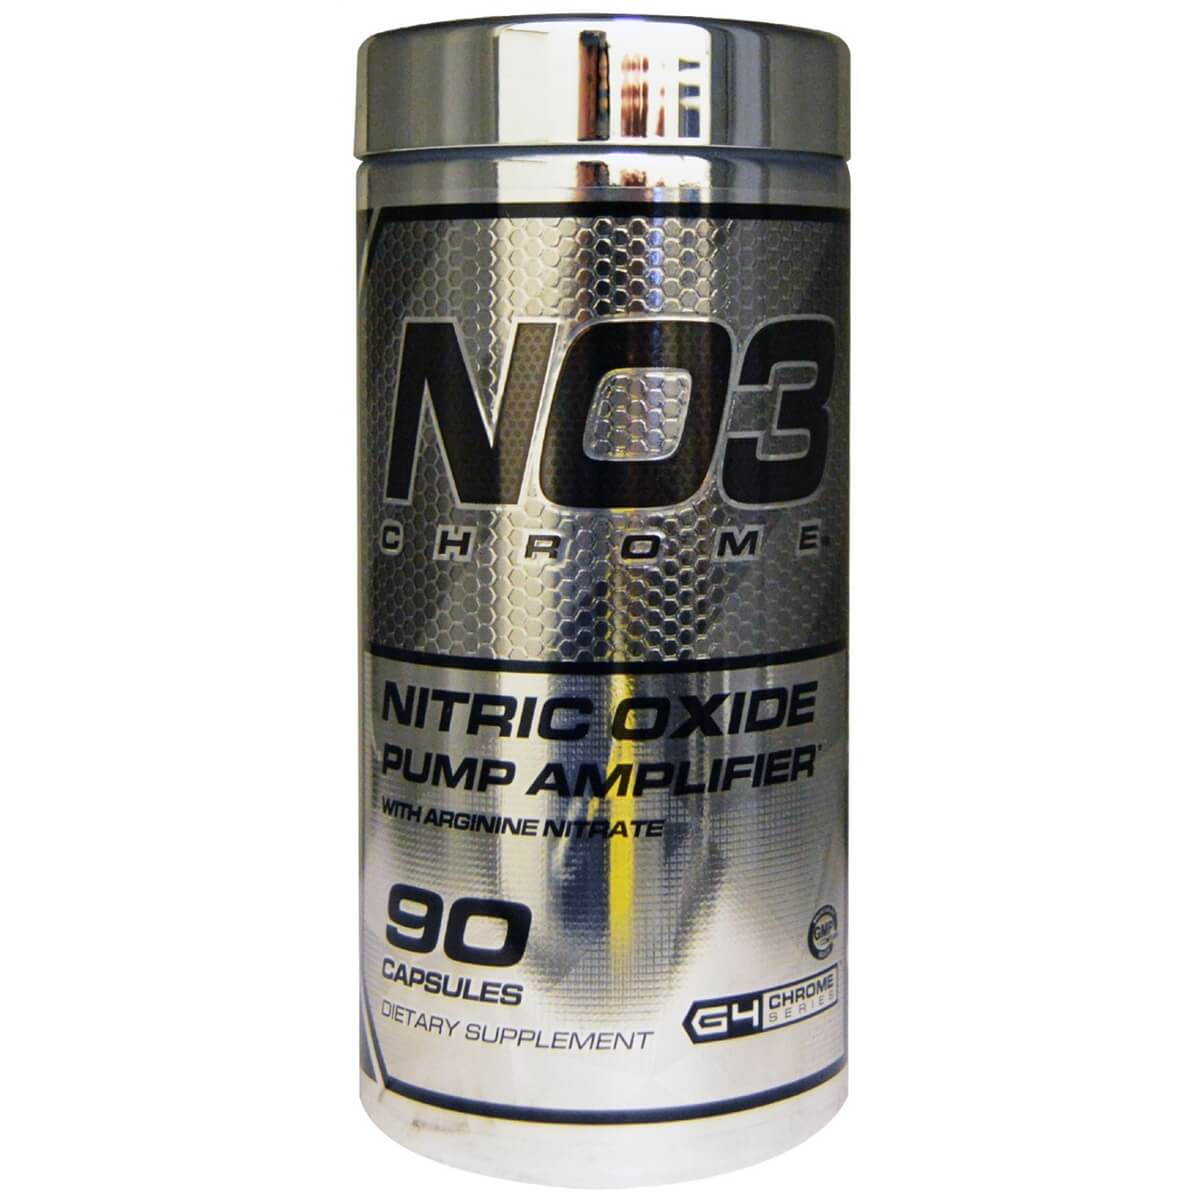 NO3 Chrome Cellucor - 90 caps